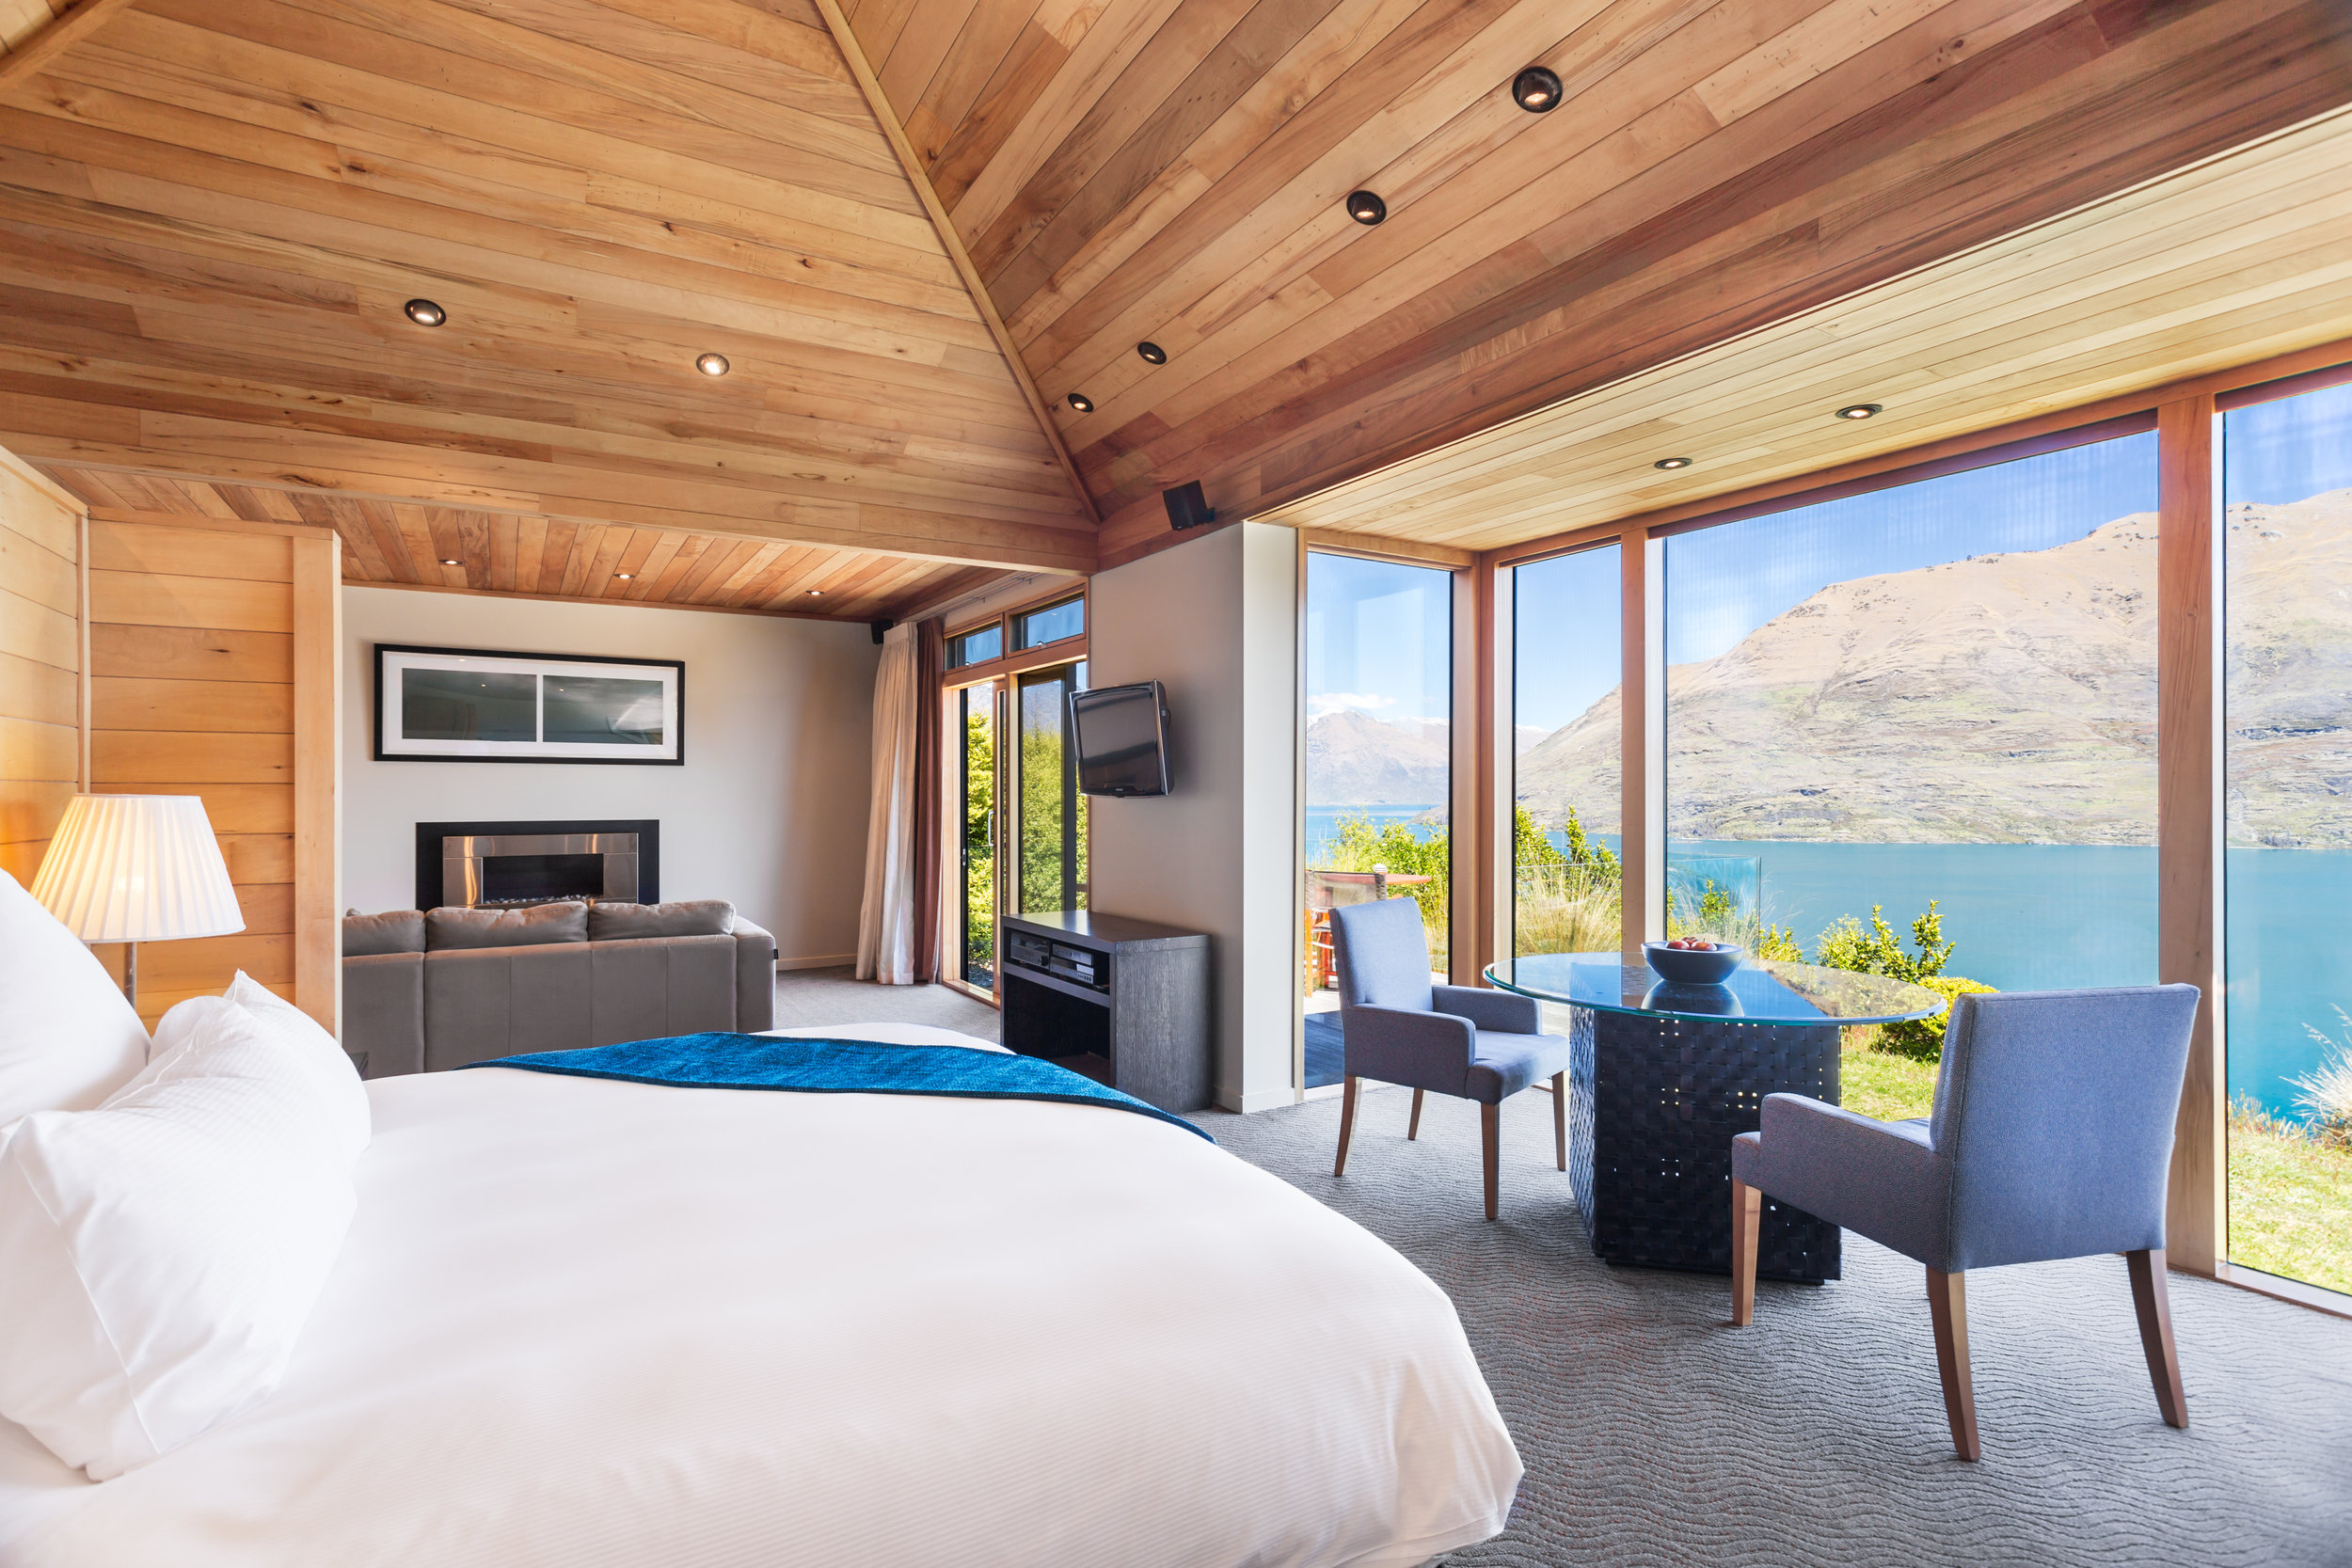 rsz_mabey_ski_new_zealand_queenstown_azur_lodge_12.jpg